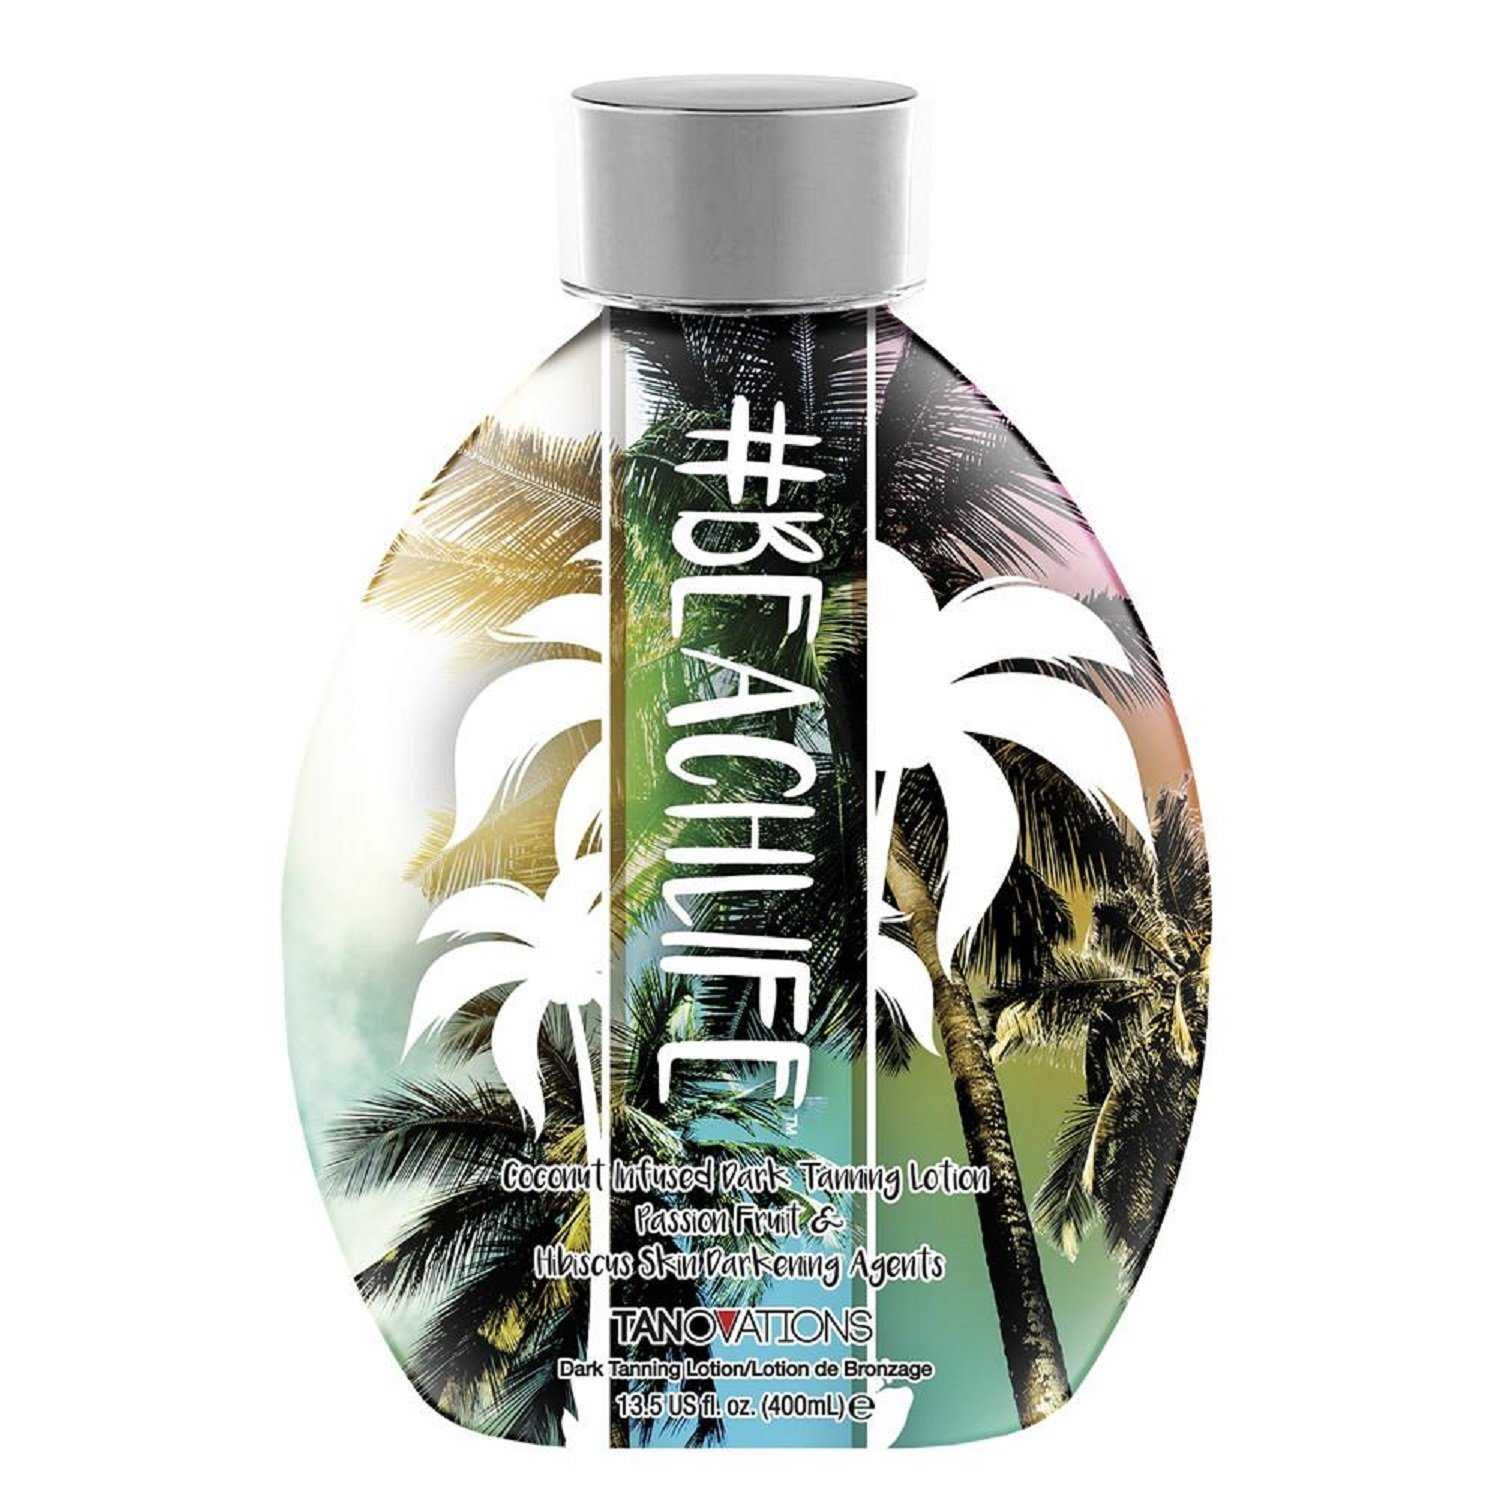 #BeachLife, Indoor/Outdoor Intensifiers, Coconut Infused, 13.5 Ounce Tanning Lotion, Tanovations